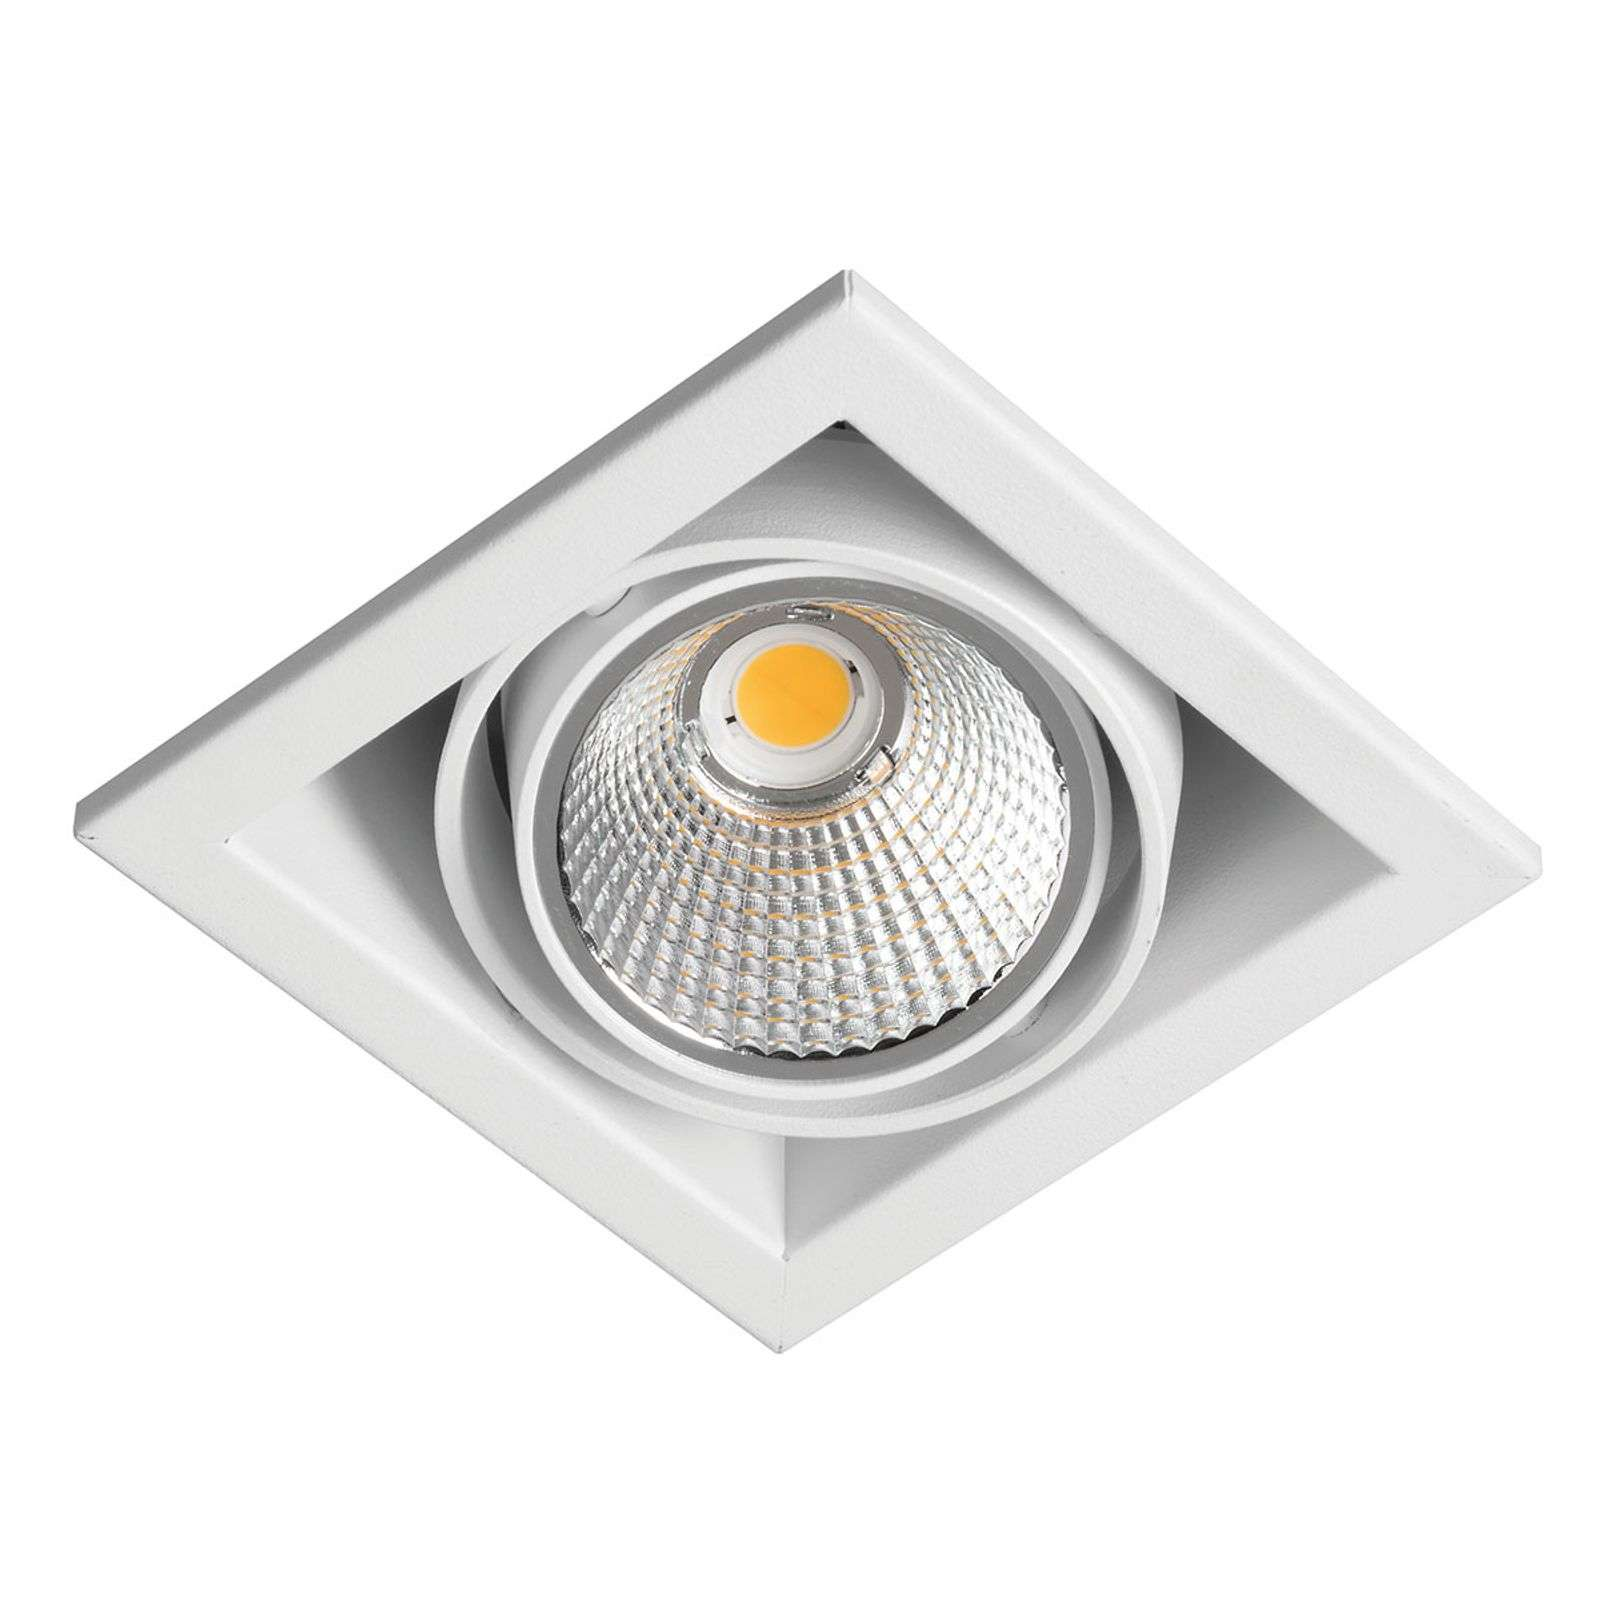 Zipar Uno Recessed spot encastrable LED 20W 3 000K